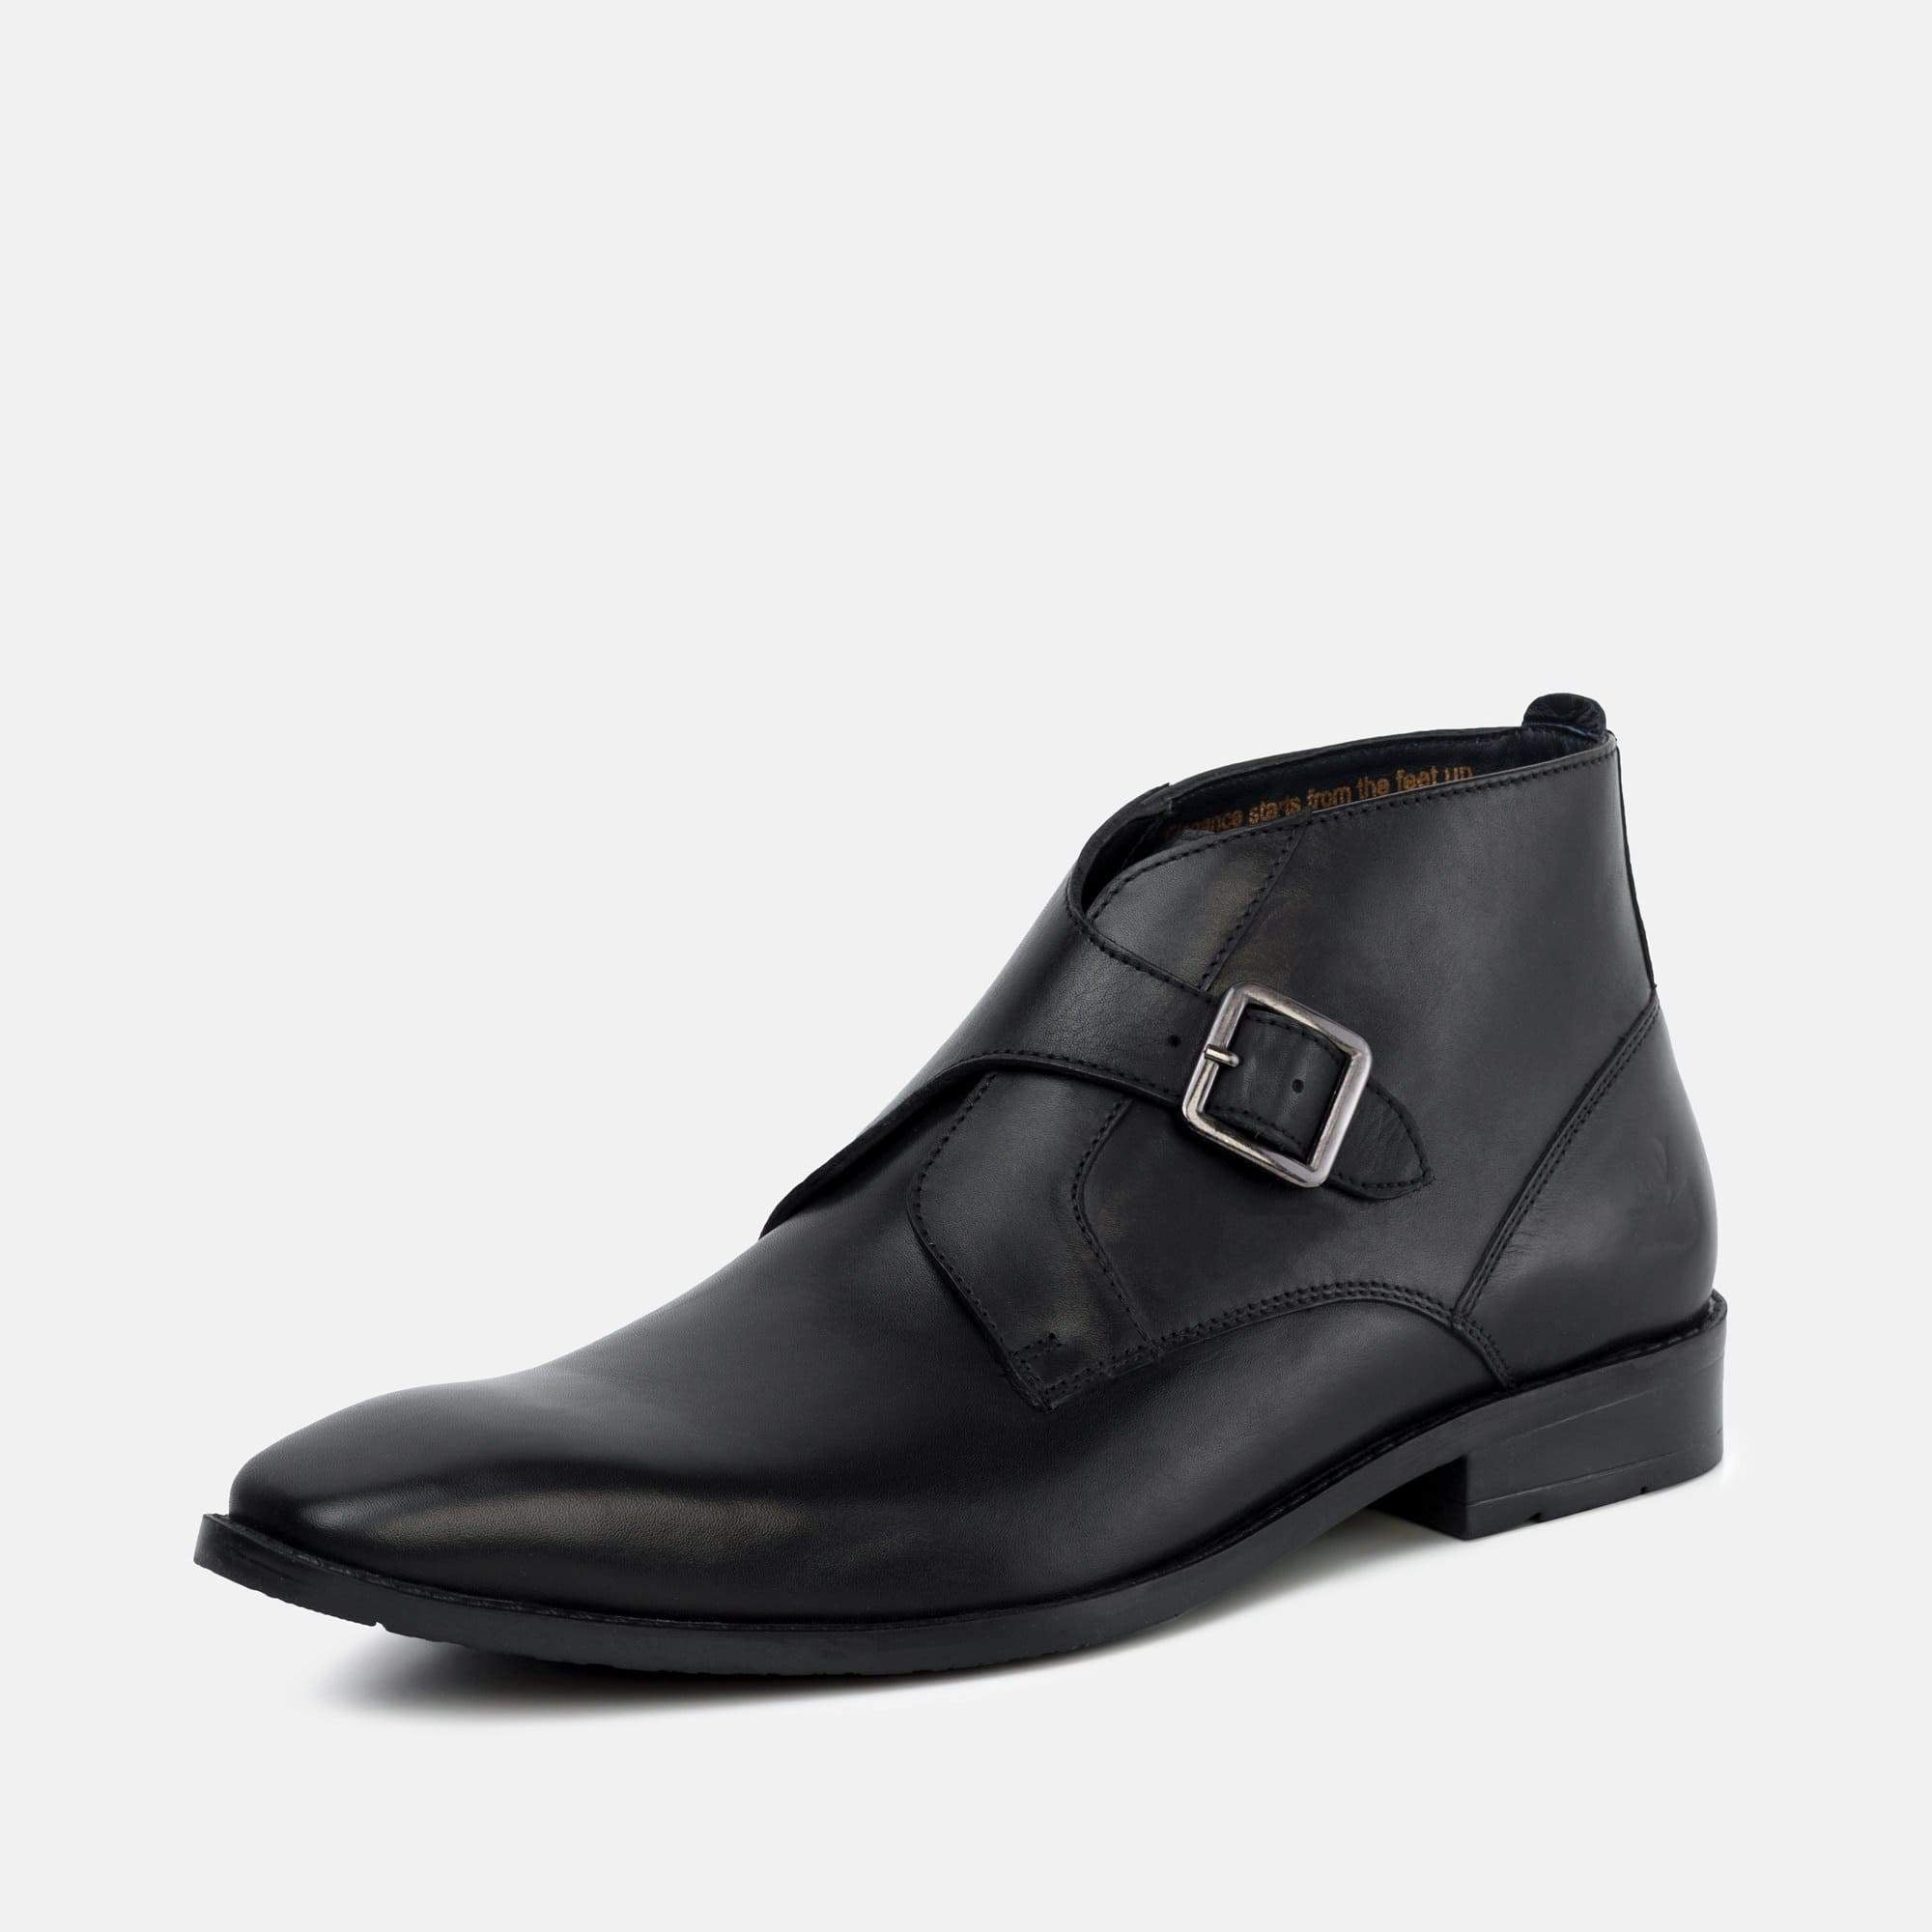 Goodwin Smith Footwear Logan Black Leather Monk Strap Ankle Boot